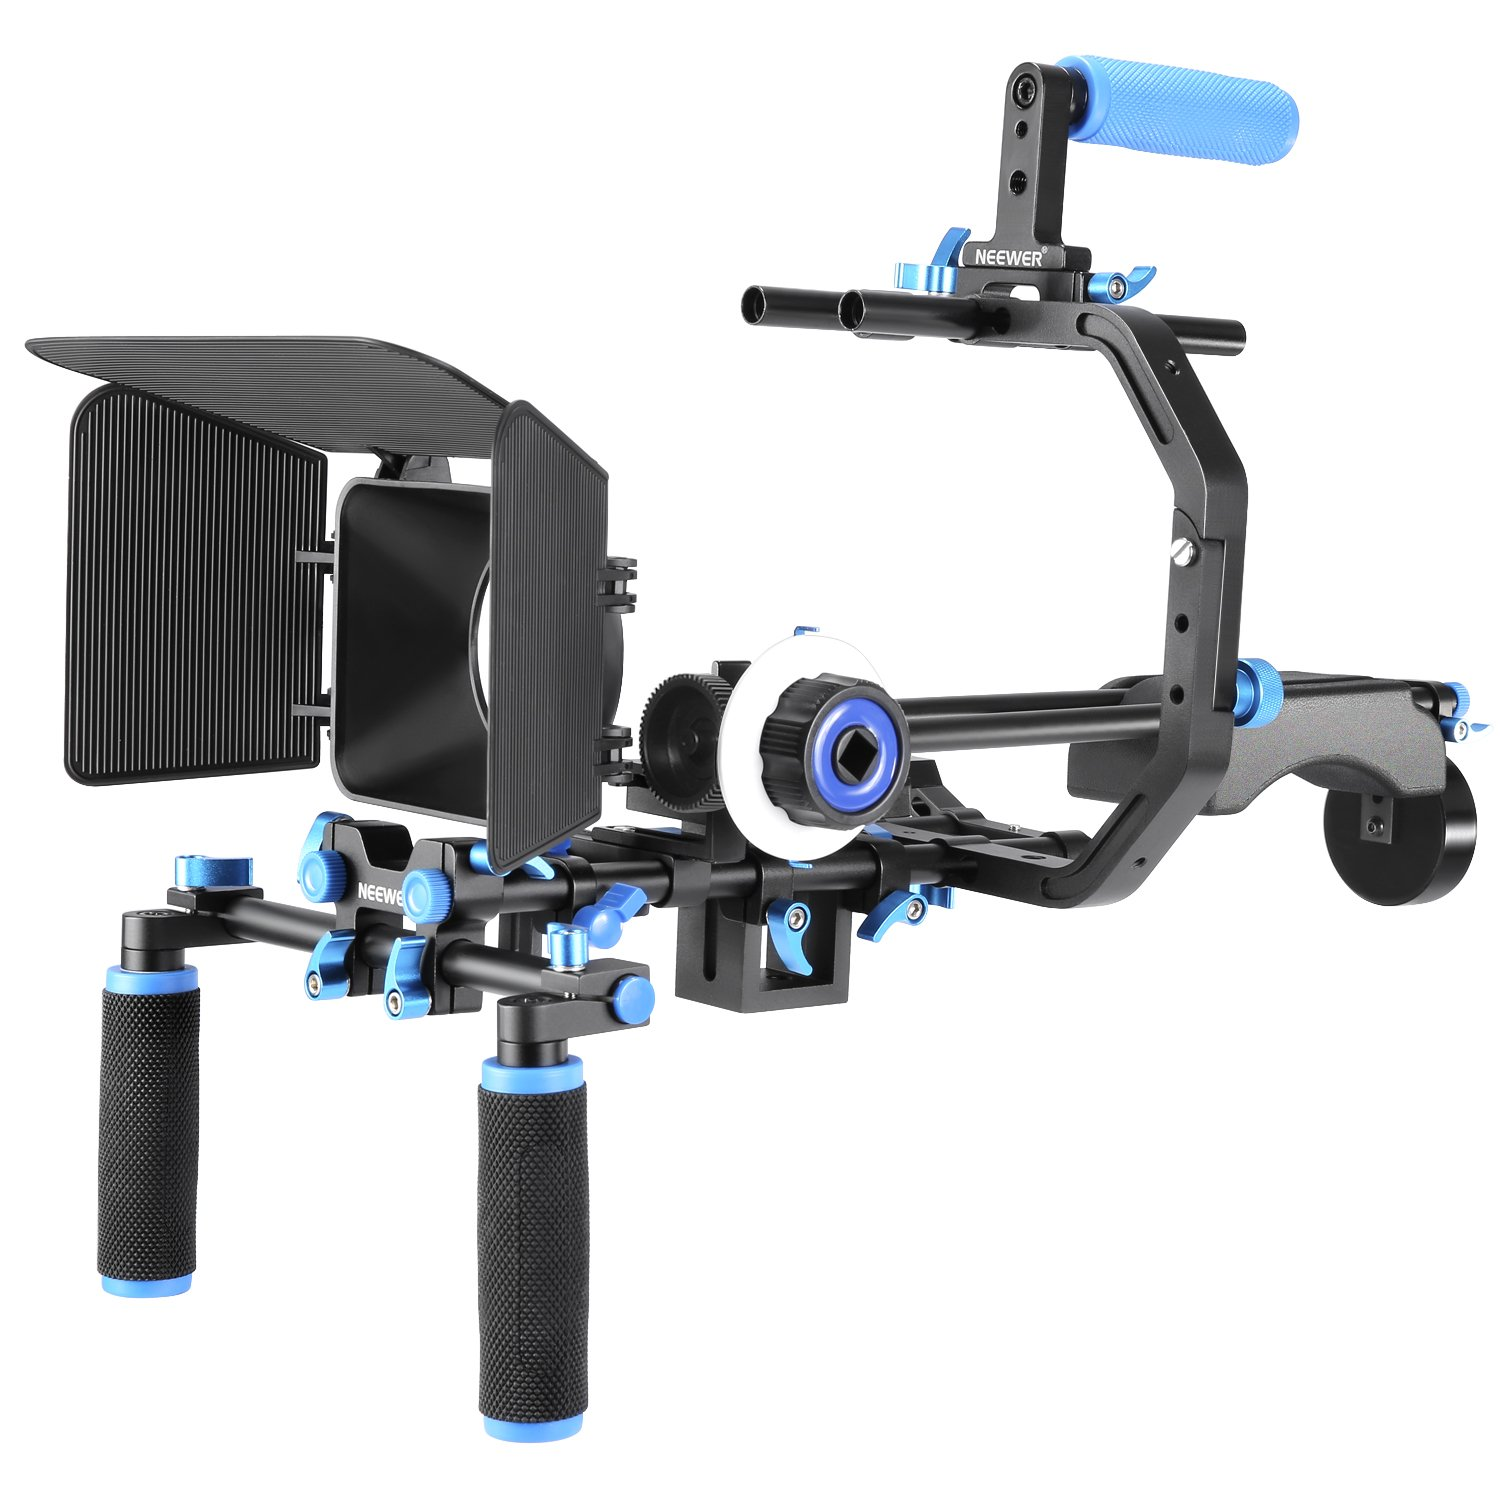 Neewer Film Movie Video Making System Kit for Canon Nikon Sony and Other DSLR Cameras Video Camcorders, includes: C-shaped Bracket,Handle Grip,15mm Rod,Matte Box,Follow Focus,Shoulder Rig (Blue+Black) by Neewer